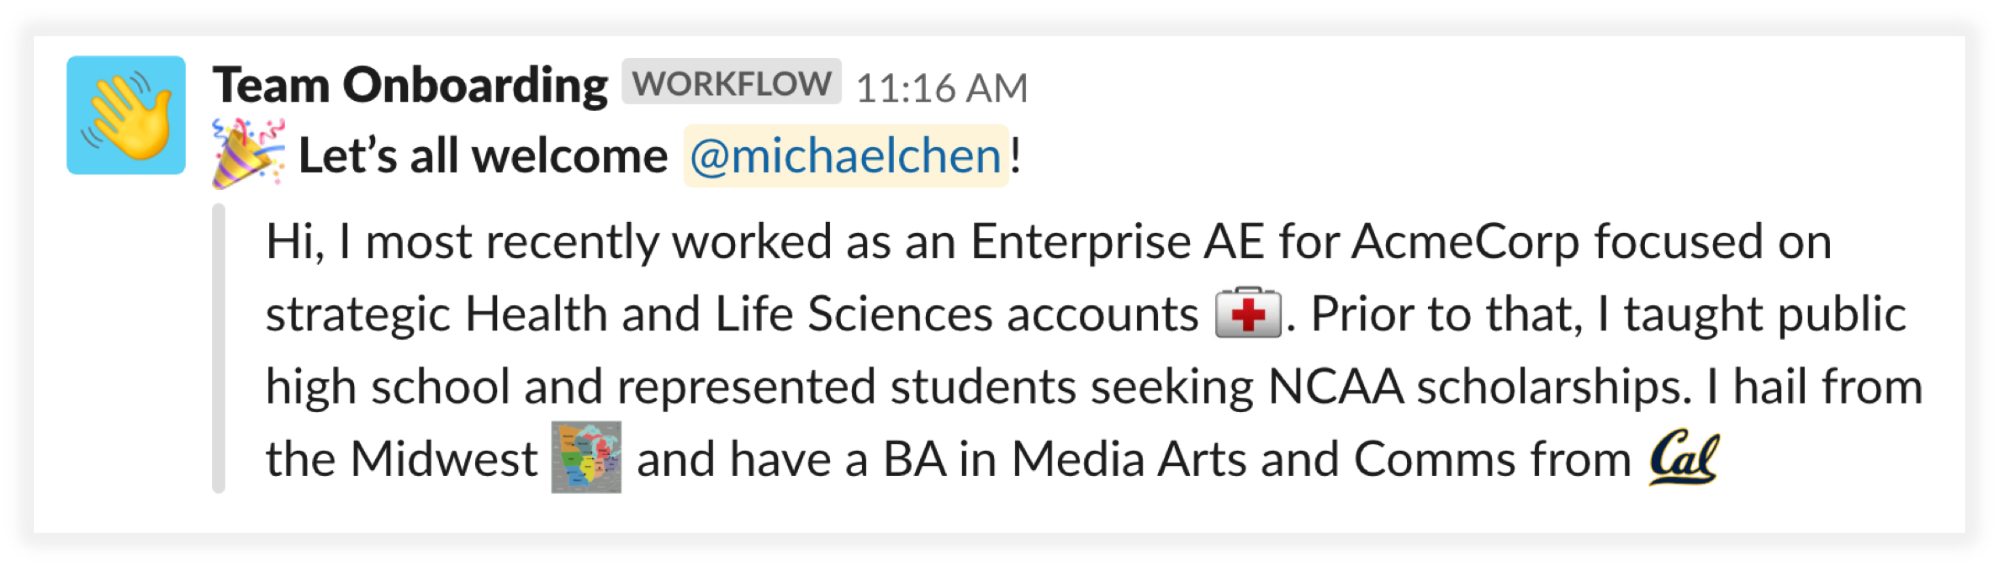 Workflow automatically posts a bio in a #welcome channel